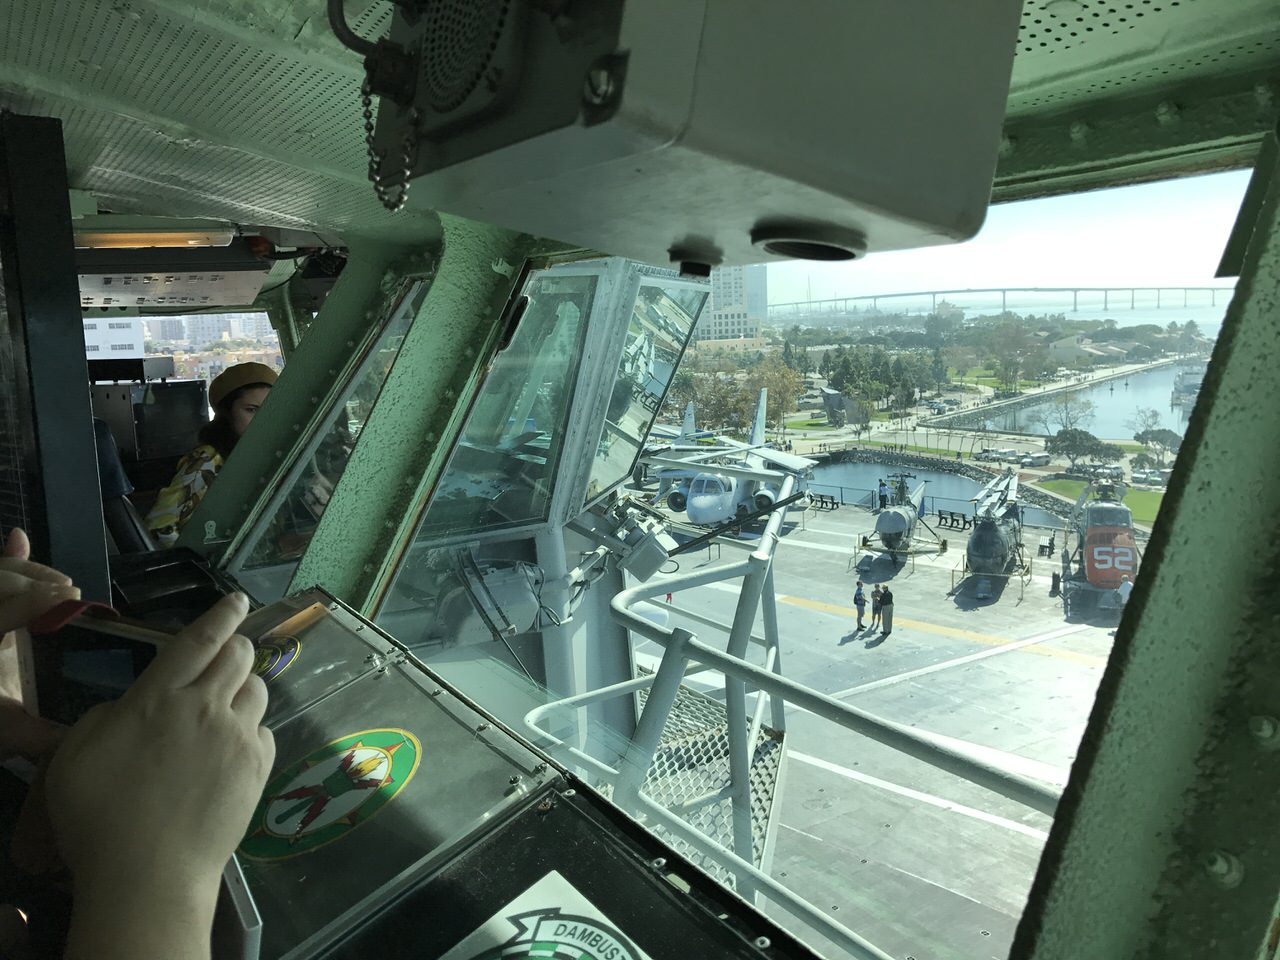 Uss midway museum 0573